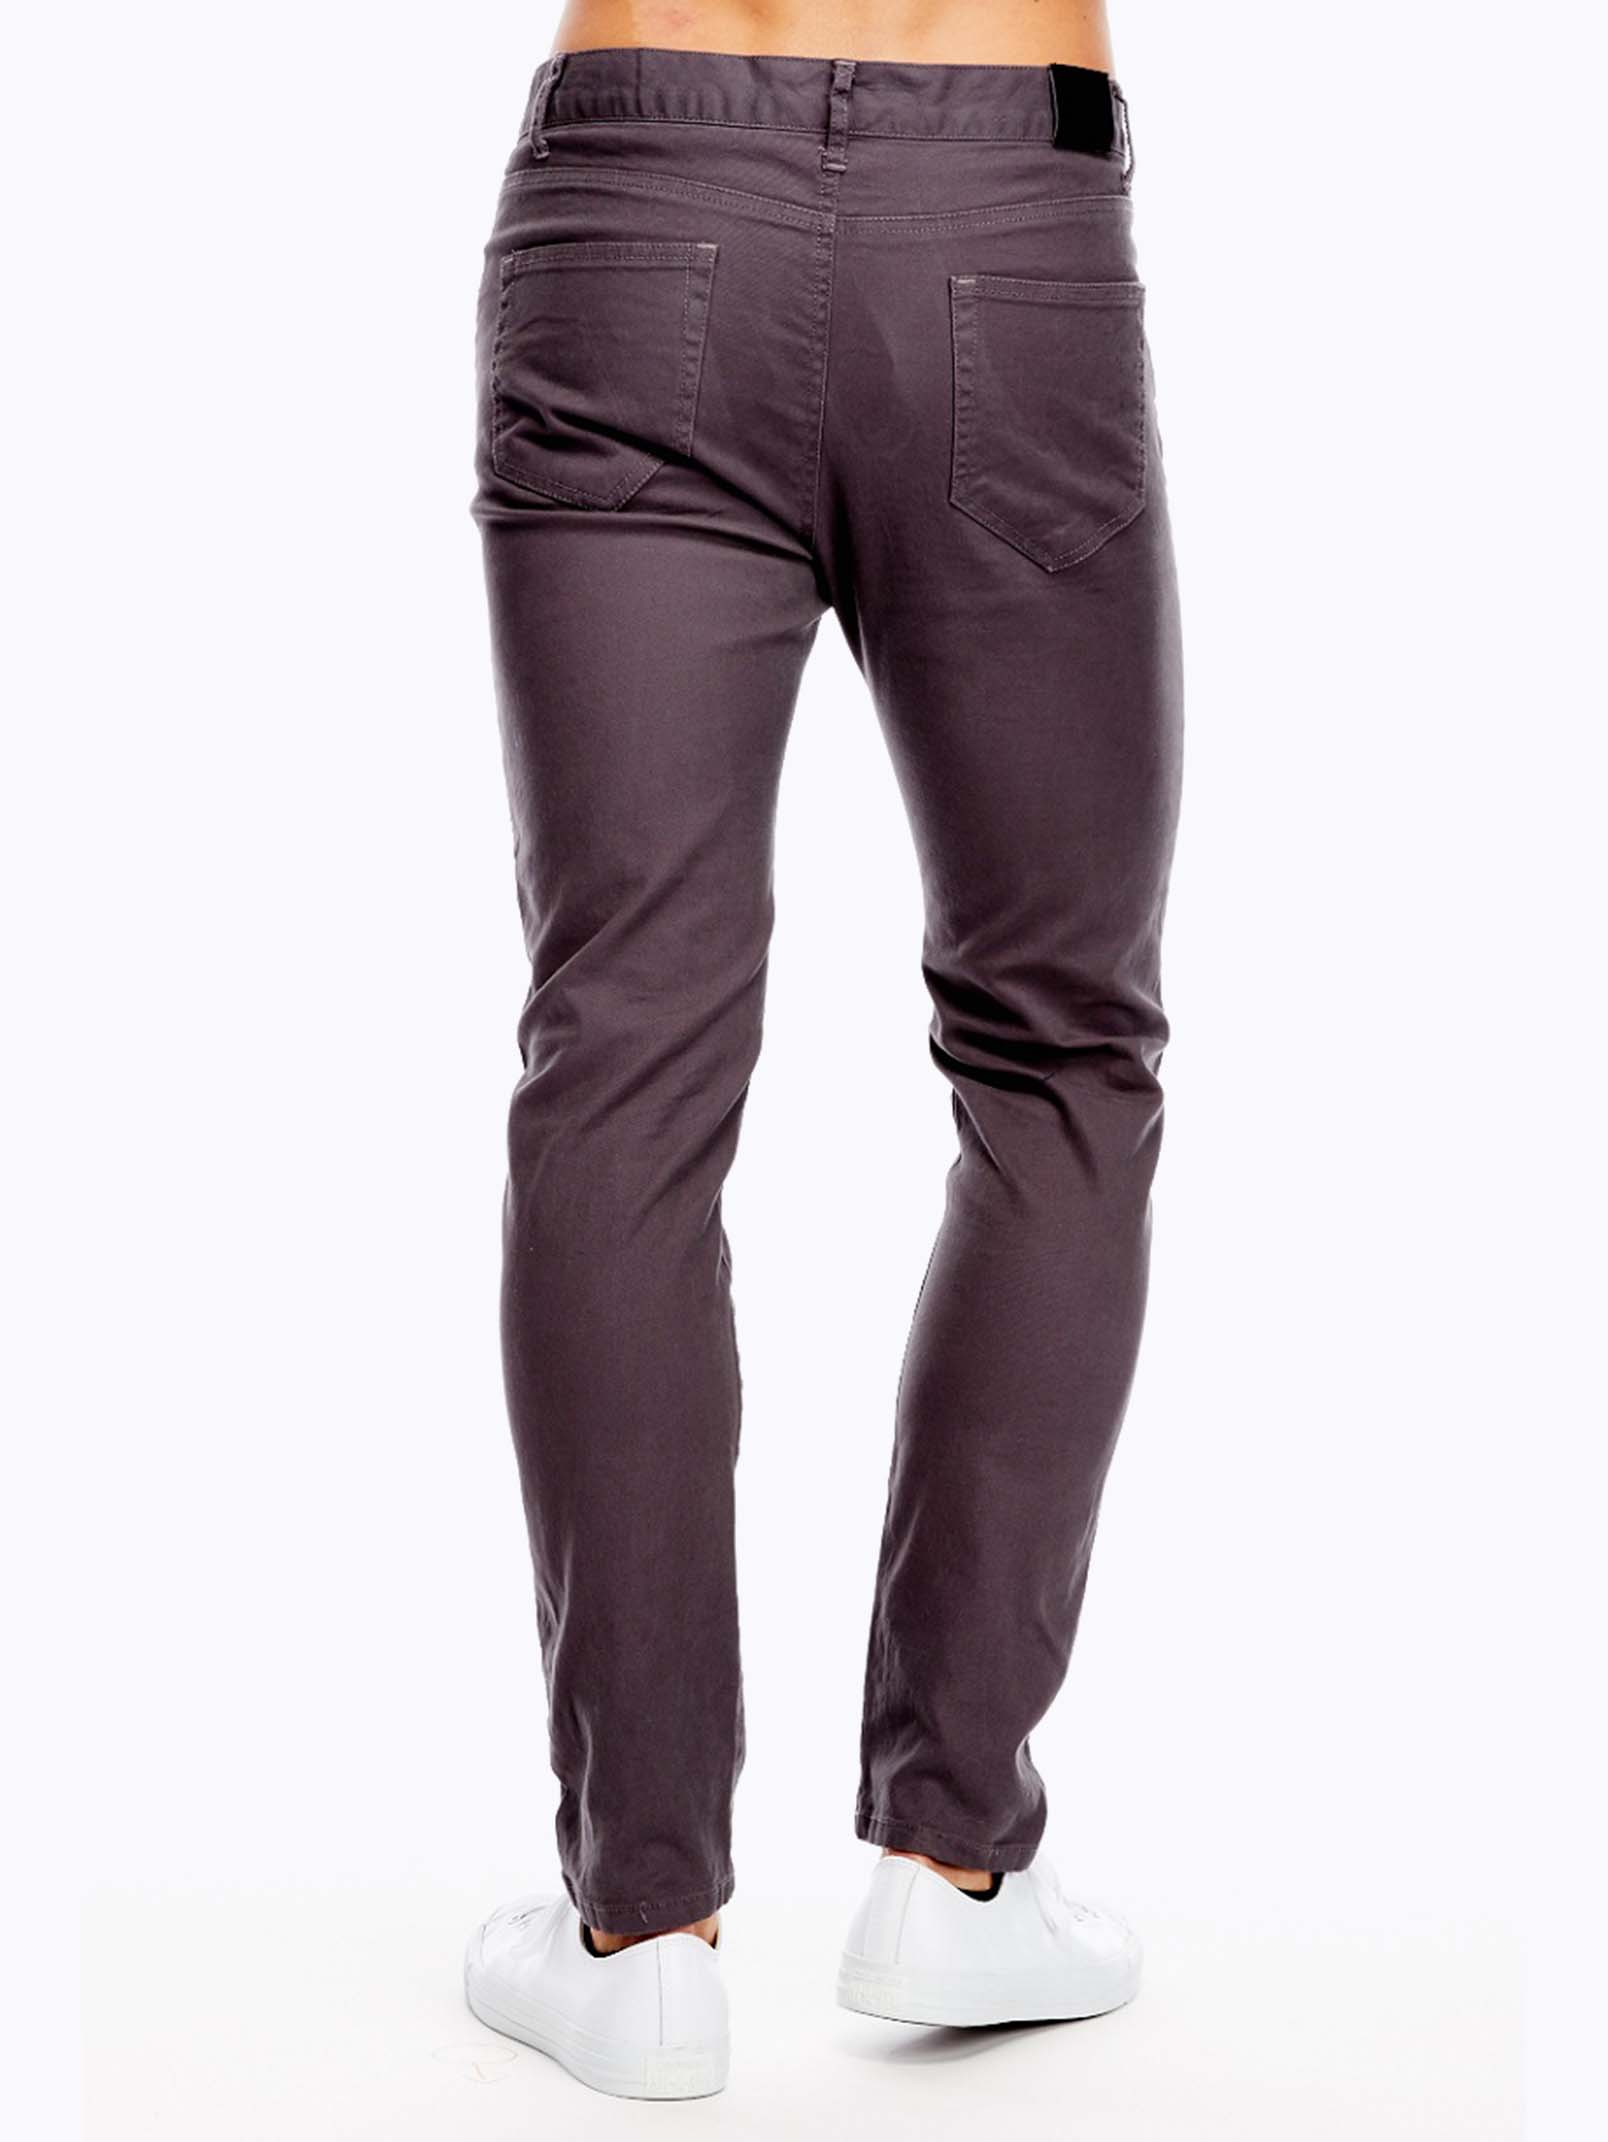 Plus Size Water Shorts Charcoal Grey Slim Fit Jeans - Modishonline.com